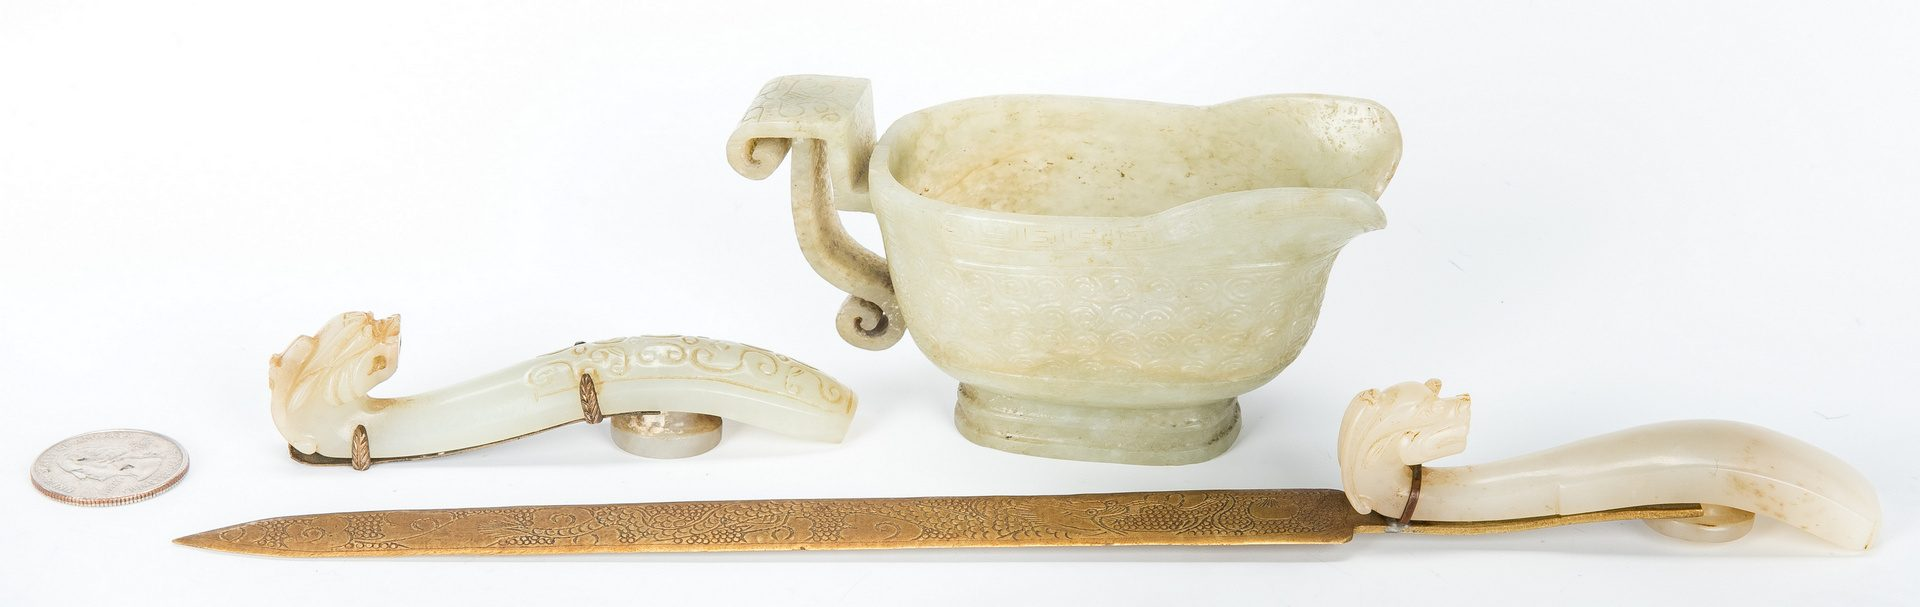 Lot 2: Archaic form Jade Libation Cup & 2 Jade Belt Hooks